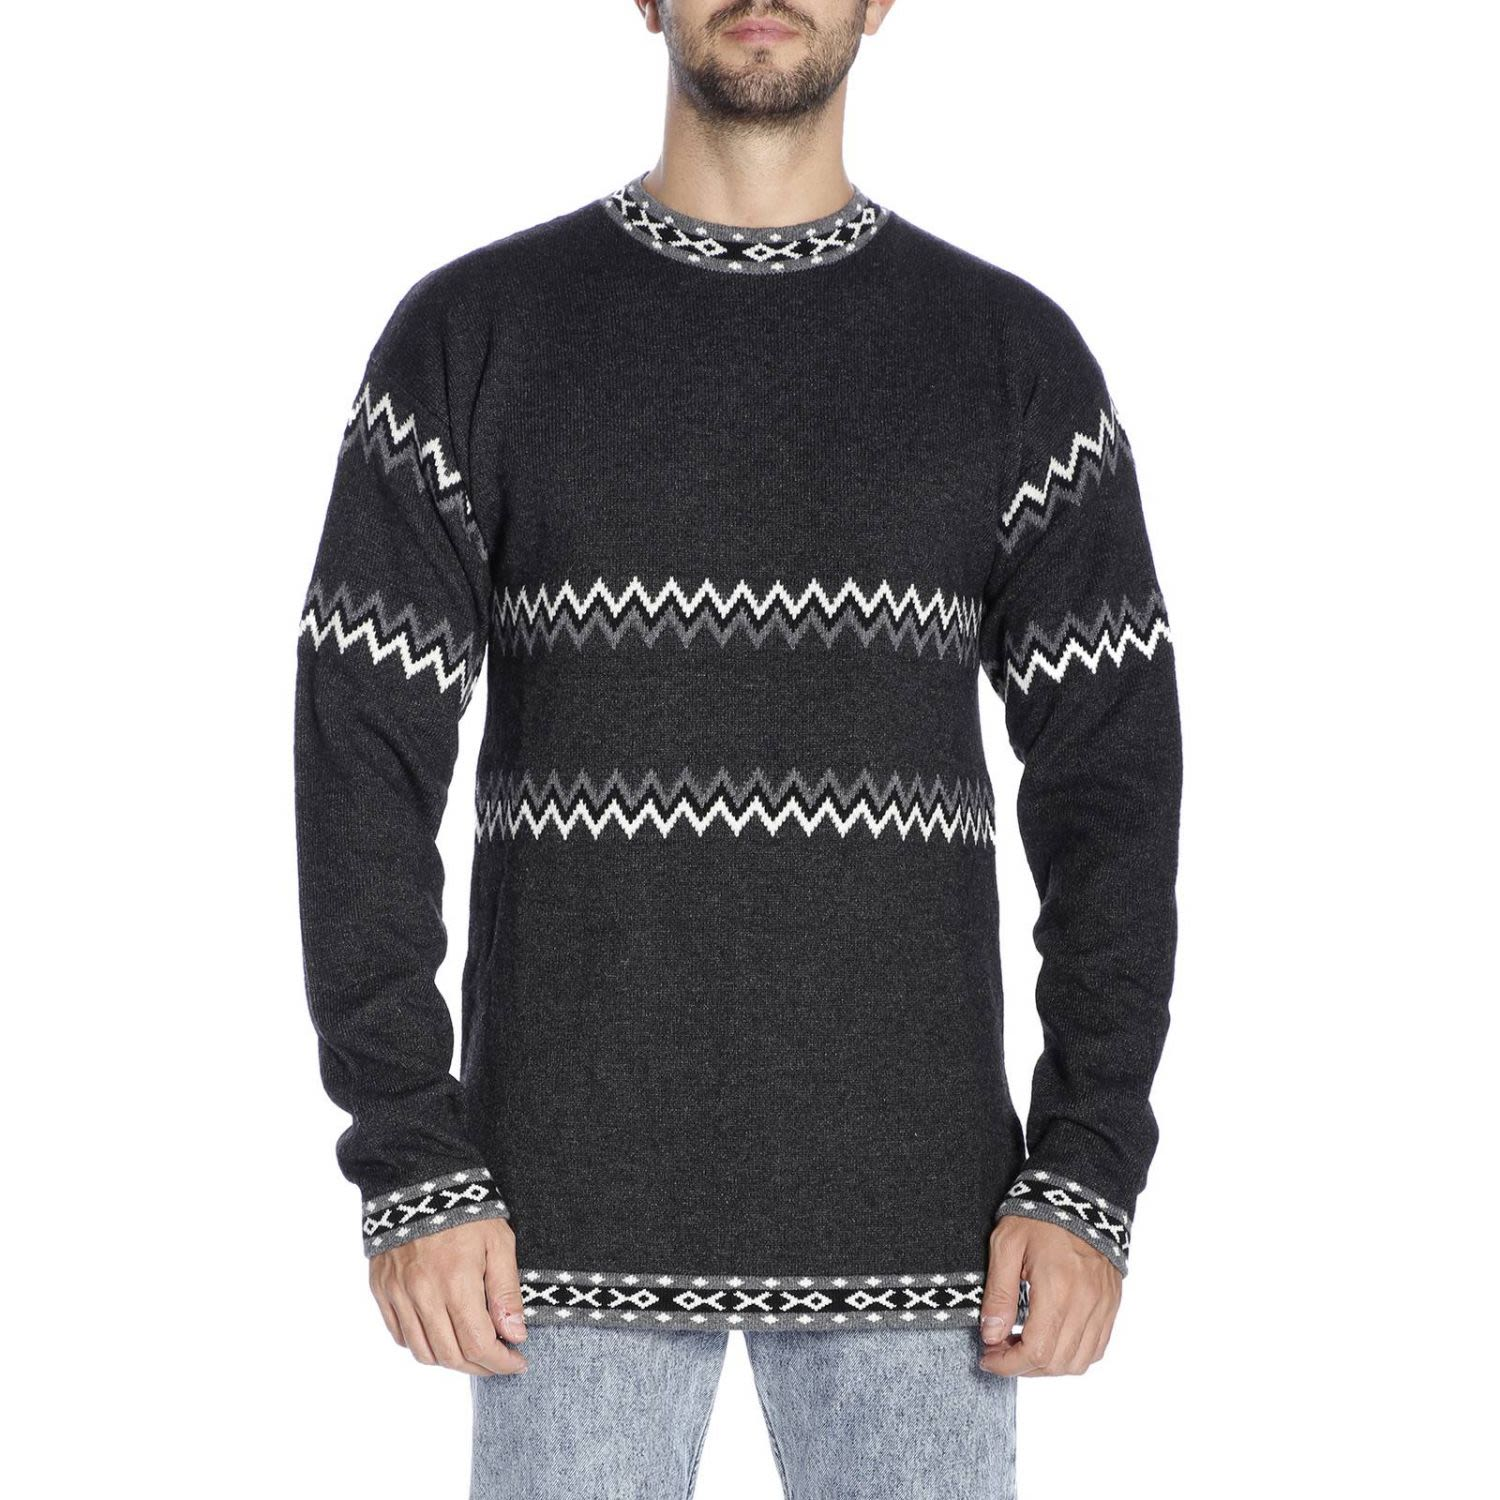 Diesel Black Gold Sweater Sweater Men Diesel Black Gold